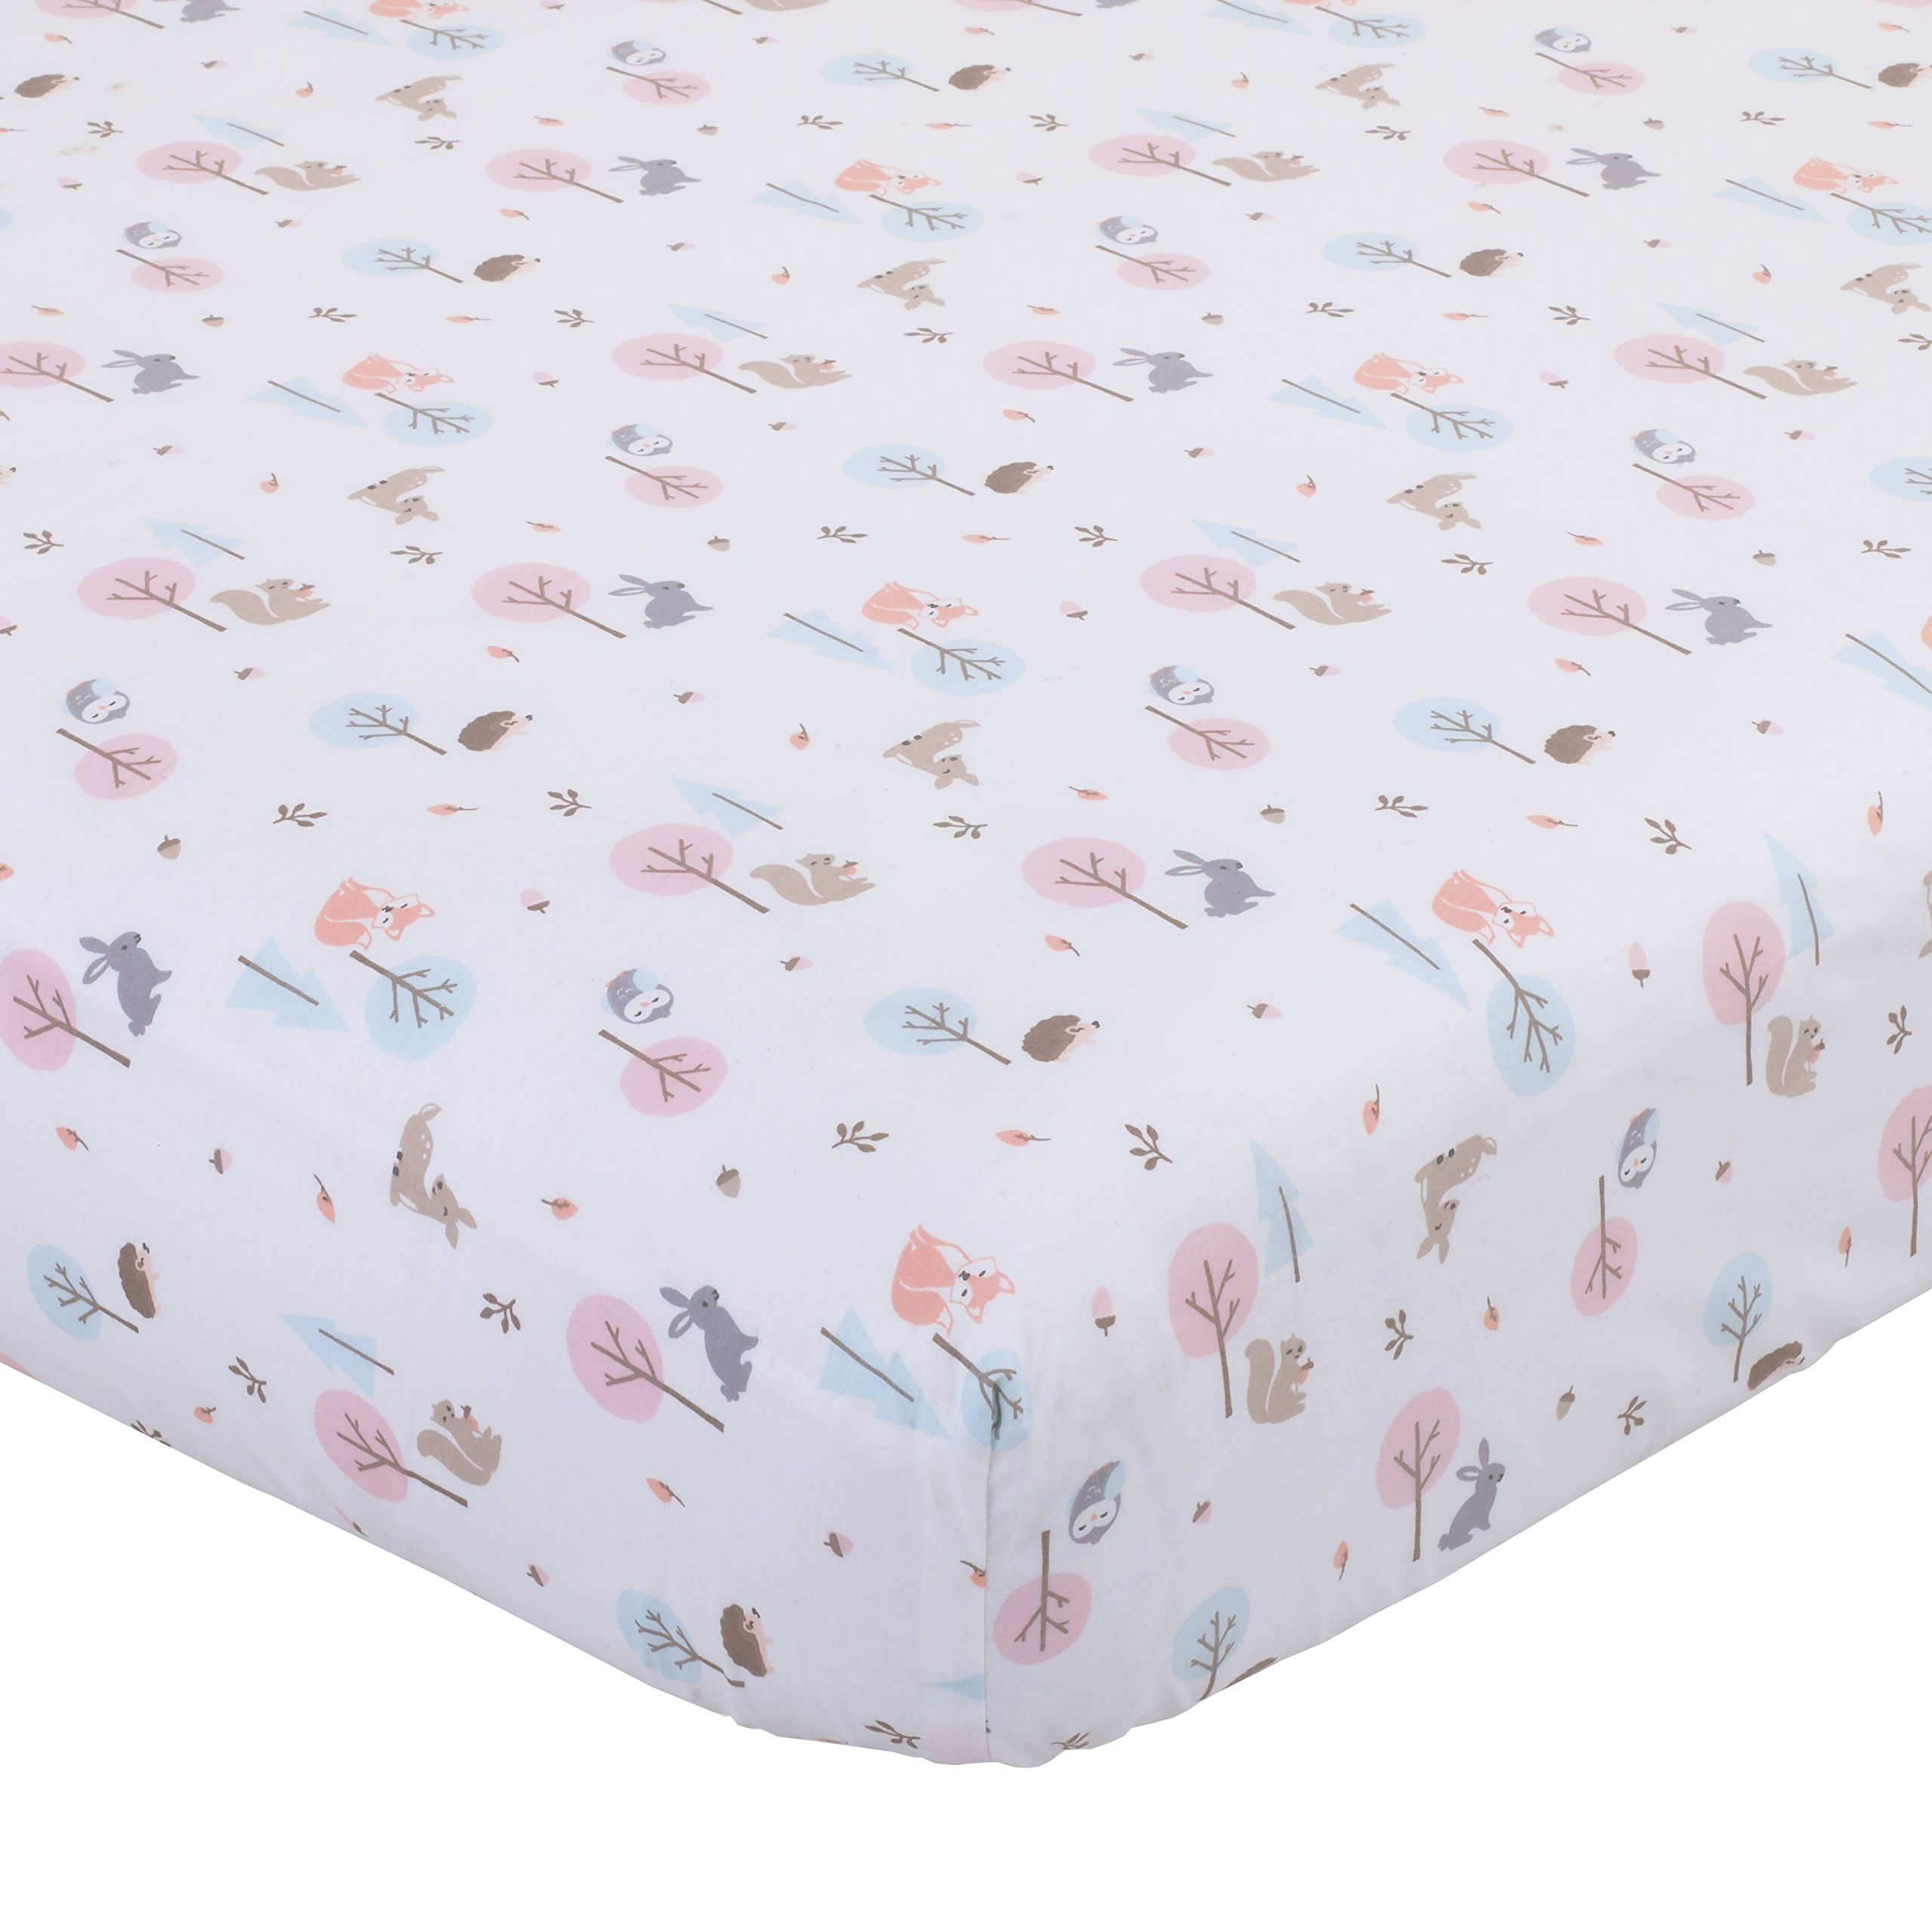 Carters Woodland Meadow Forest/Deer/Owl 100% Cotton Fitted Crib Sheet, Pink